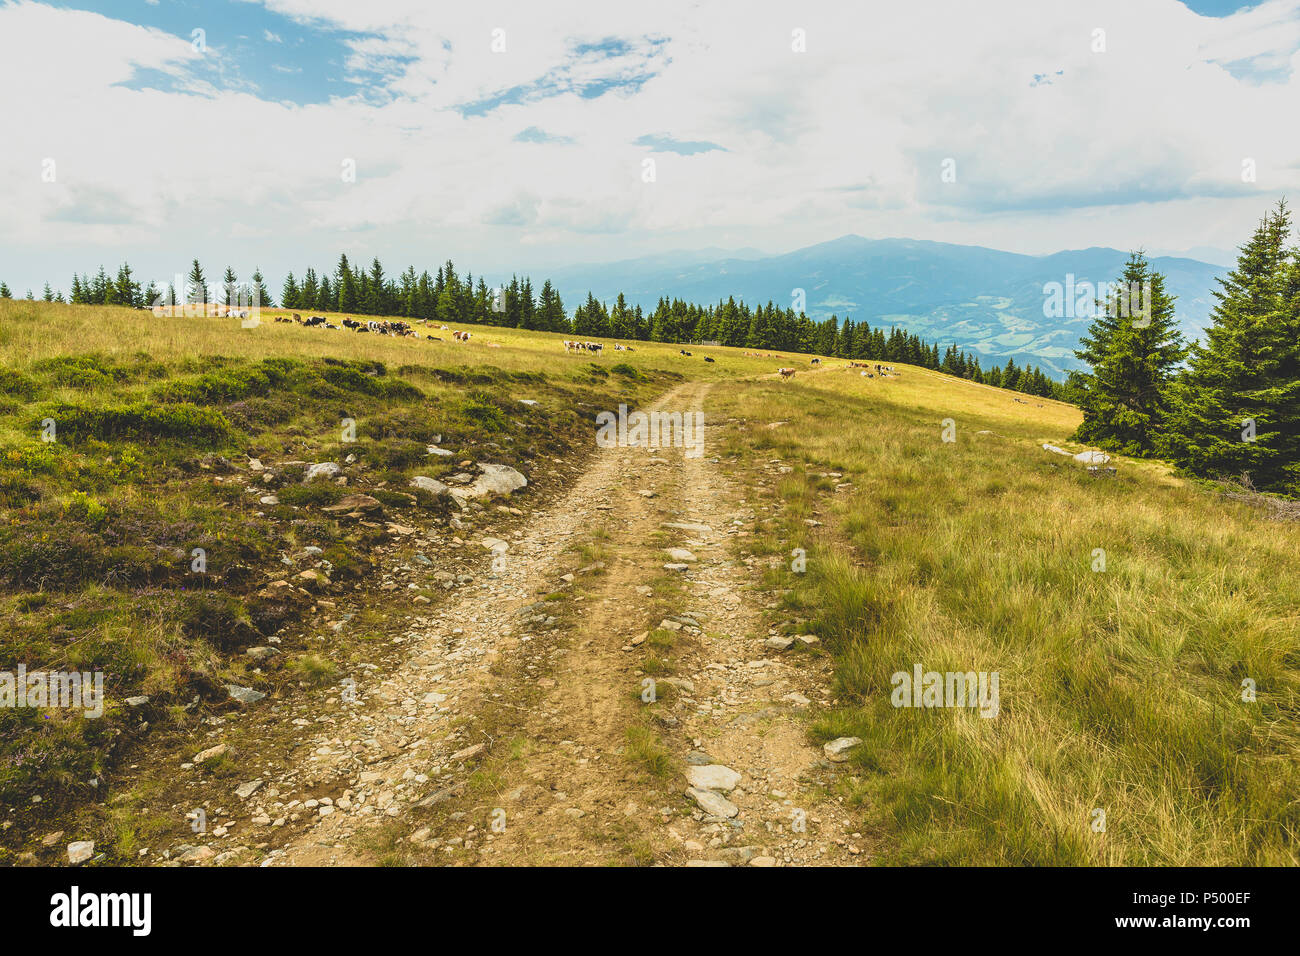 Austria, Styria, dirt track on plateau - Stock Image